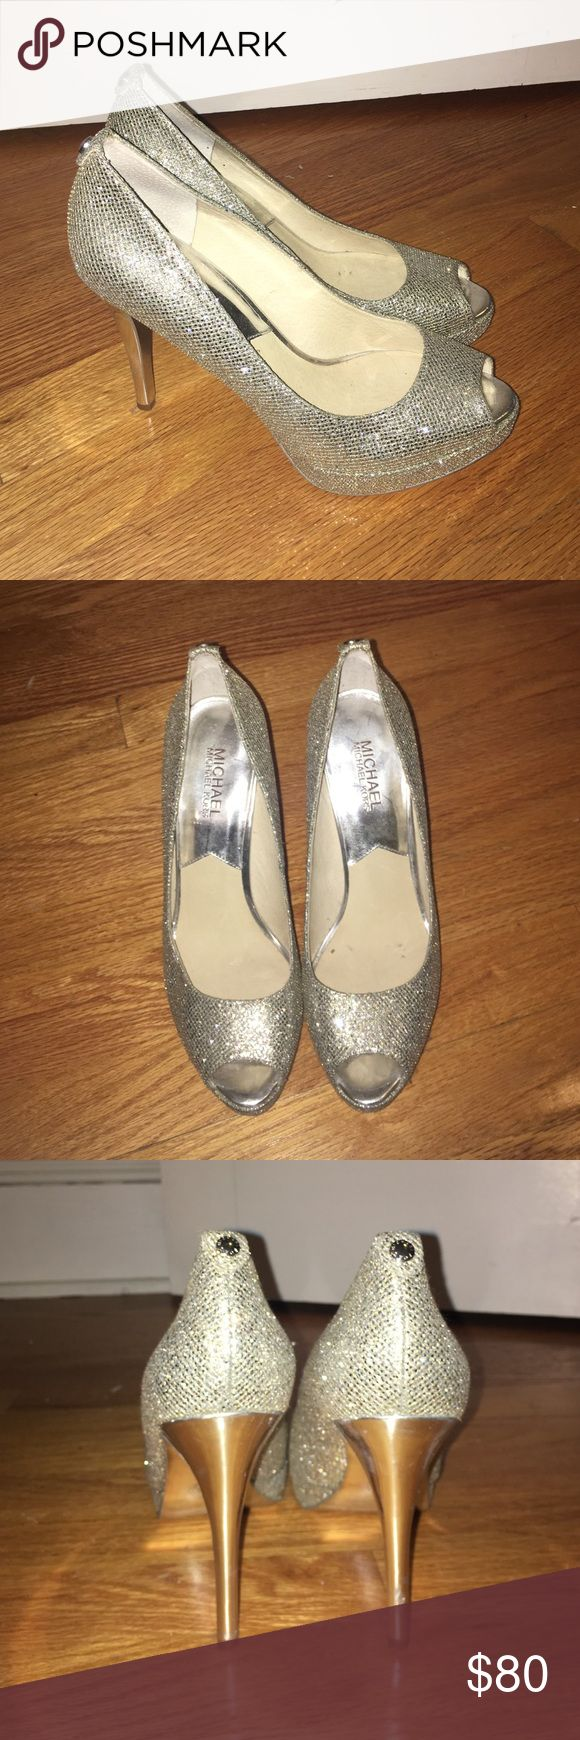 """MICHAEL KORS silver sparkle 4 1/2"""" heels SIZE 8.5 ONLY WORN ONCE these are the perfect shoes for ANY special occasion such as prom sweet 16 or quinceñera & they look amazing. Note: heels look cooper/gold in the picture. They are silver and just reflecting the floor MICHAEL Michael Kors Shoes Heels"""